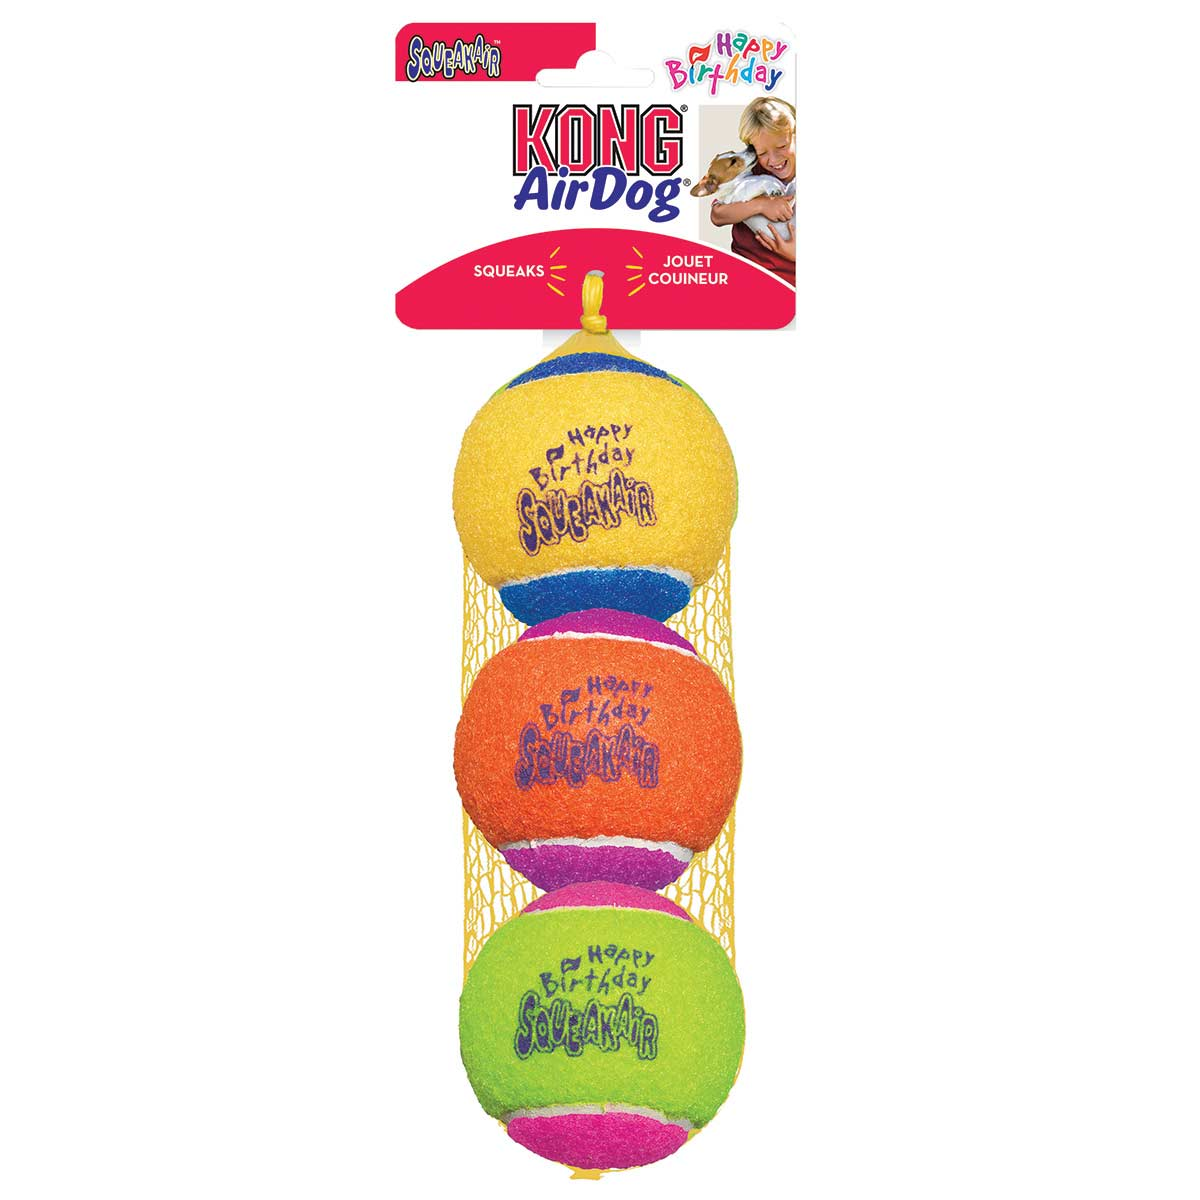 3 pack of KONG Happy Birthday Tennis Balls for Dogs